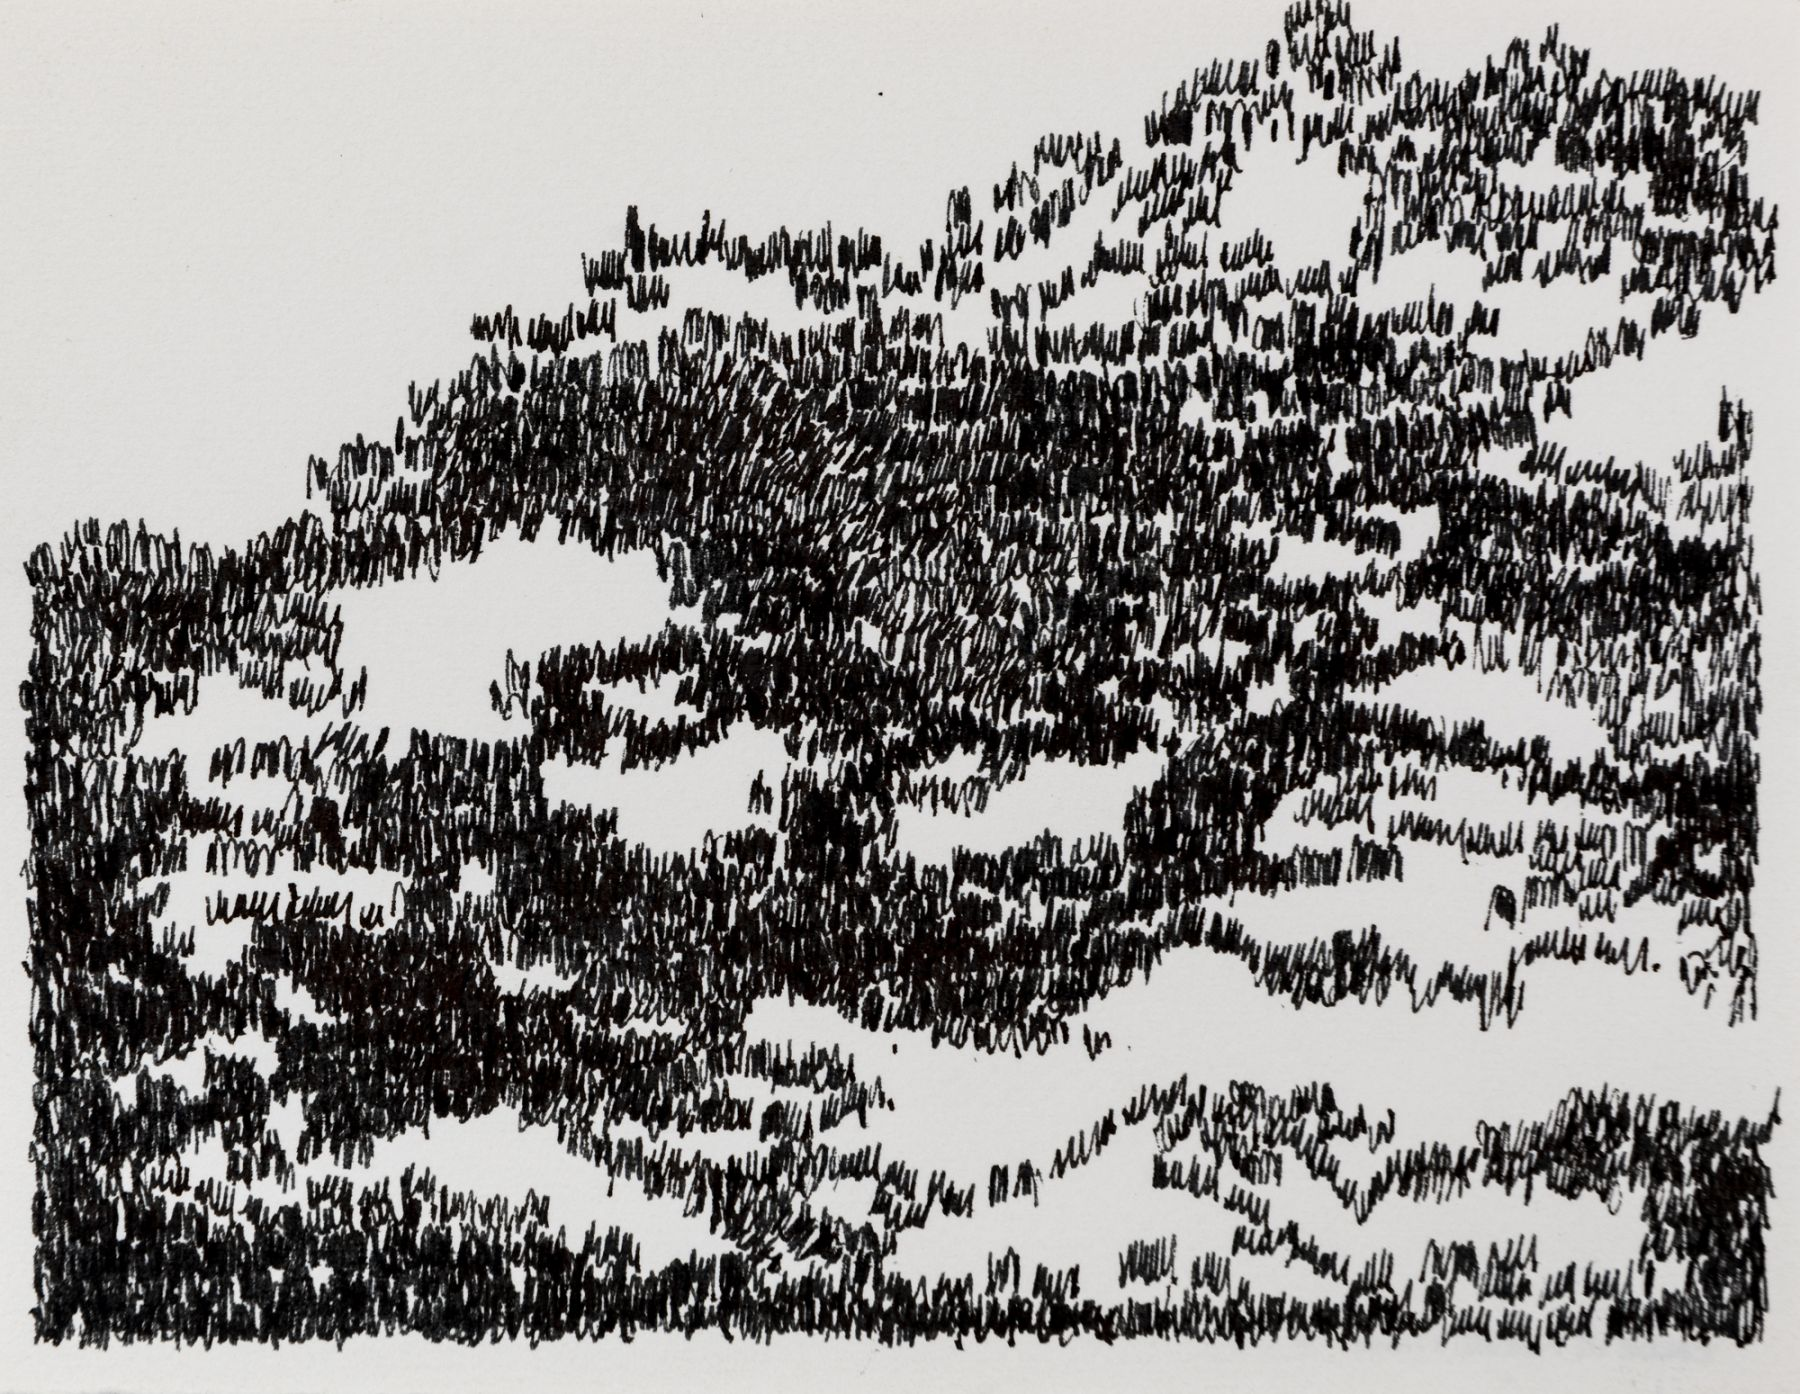 Felrath Hines, Untitled, 1977, Ink on paper,  5 x 6.5 inches, Unsigned. Abstract ink image with stacks of small squiggles. Felrath Hines worked to create universal visual idioms from a place of complex personal experience. His figurative and cubist-style artwork morphed into soft-edged organic abstracts as he grappled with hues in his chosen oil medium.